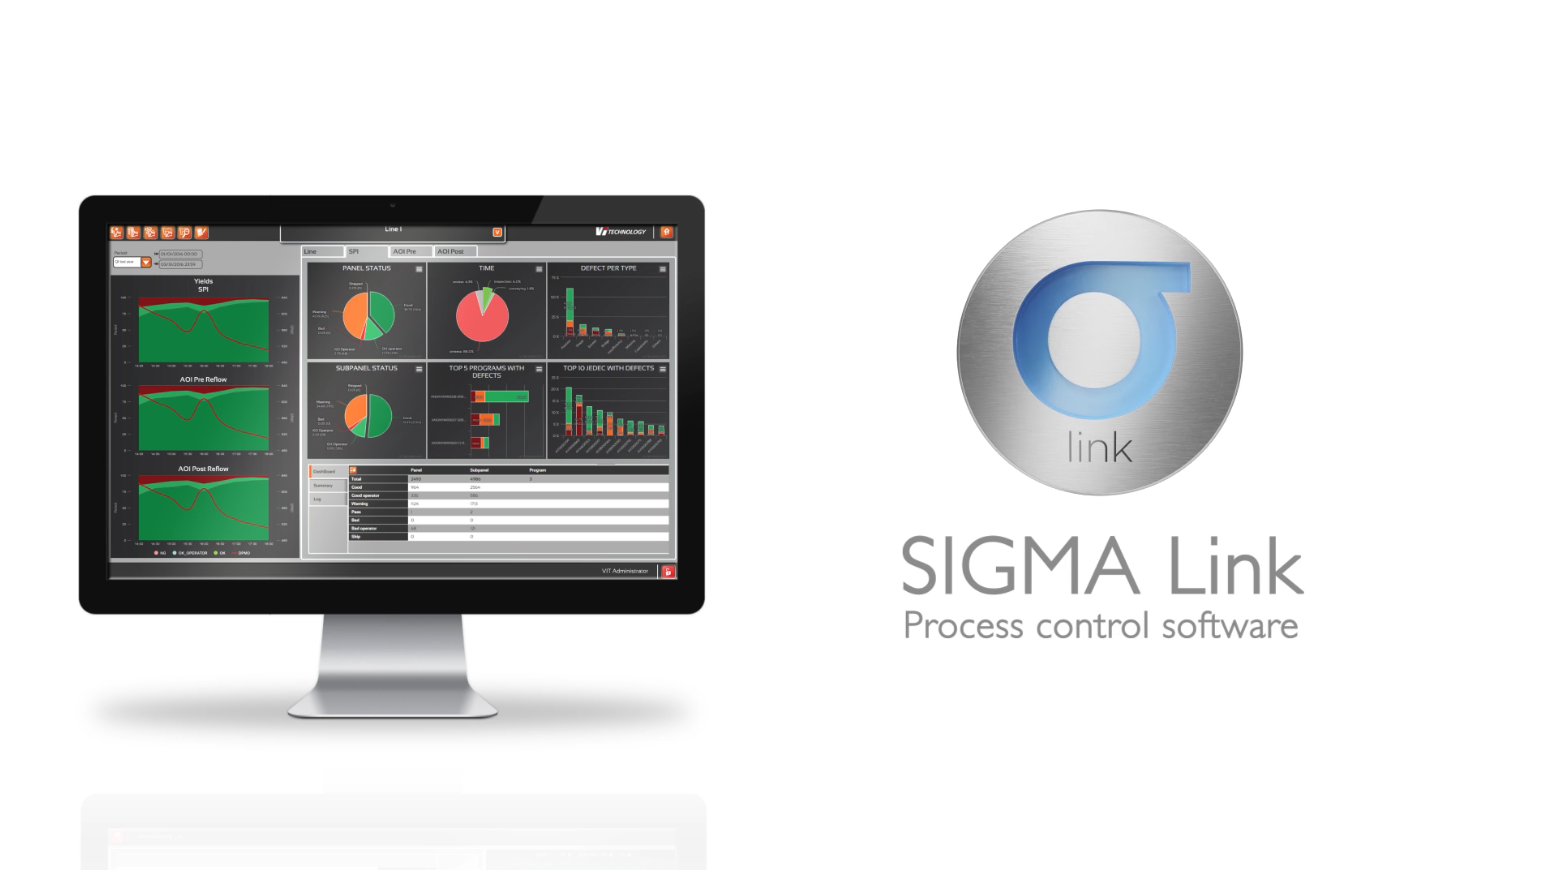 MATAS ELECTRONICS talks about SIGMA LINK Process control software from Vi TECHNOLOGY